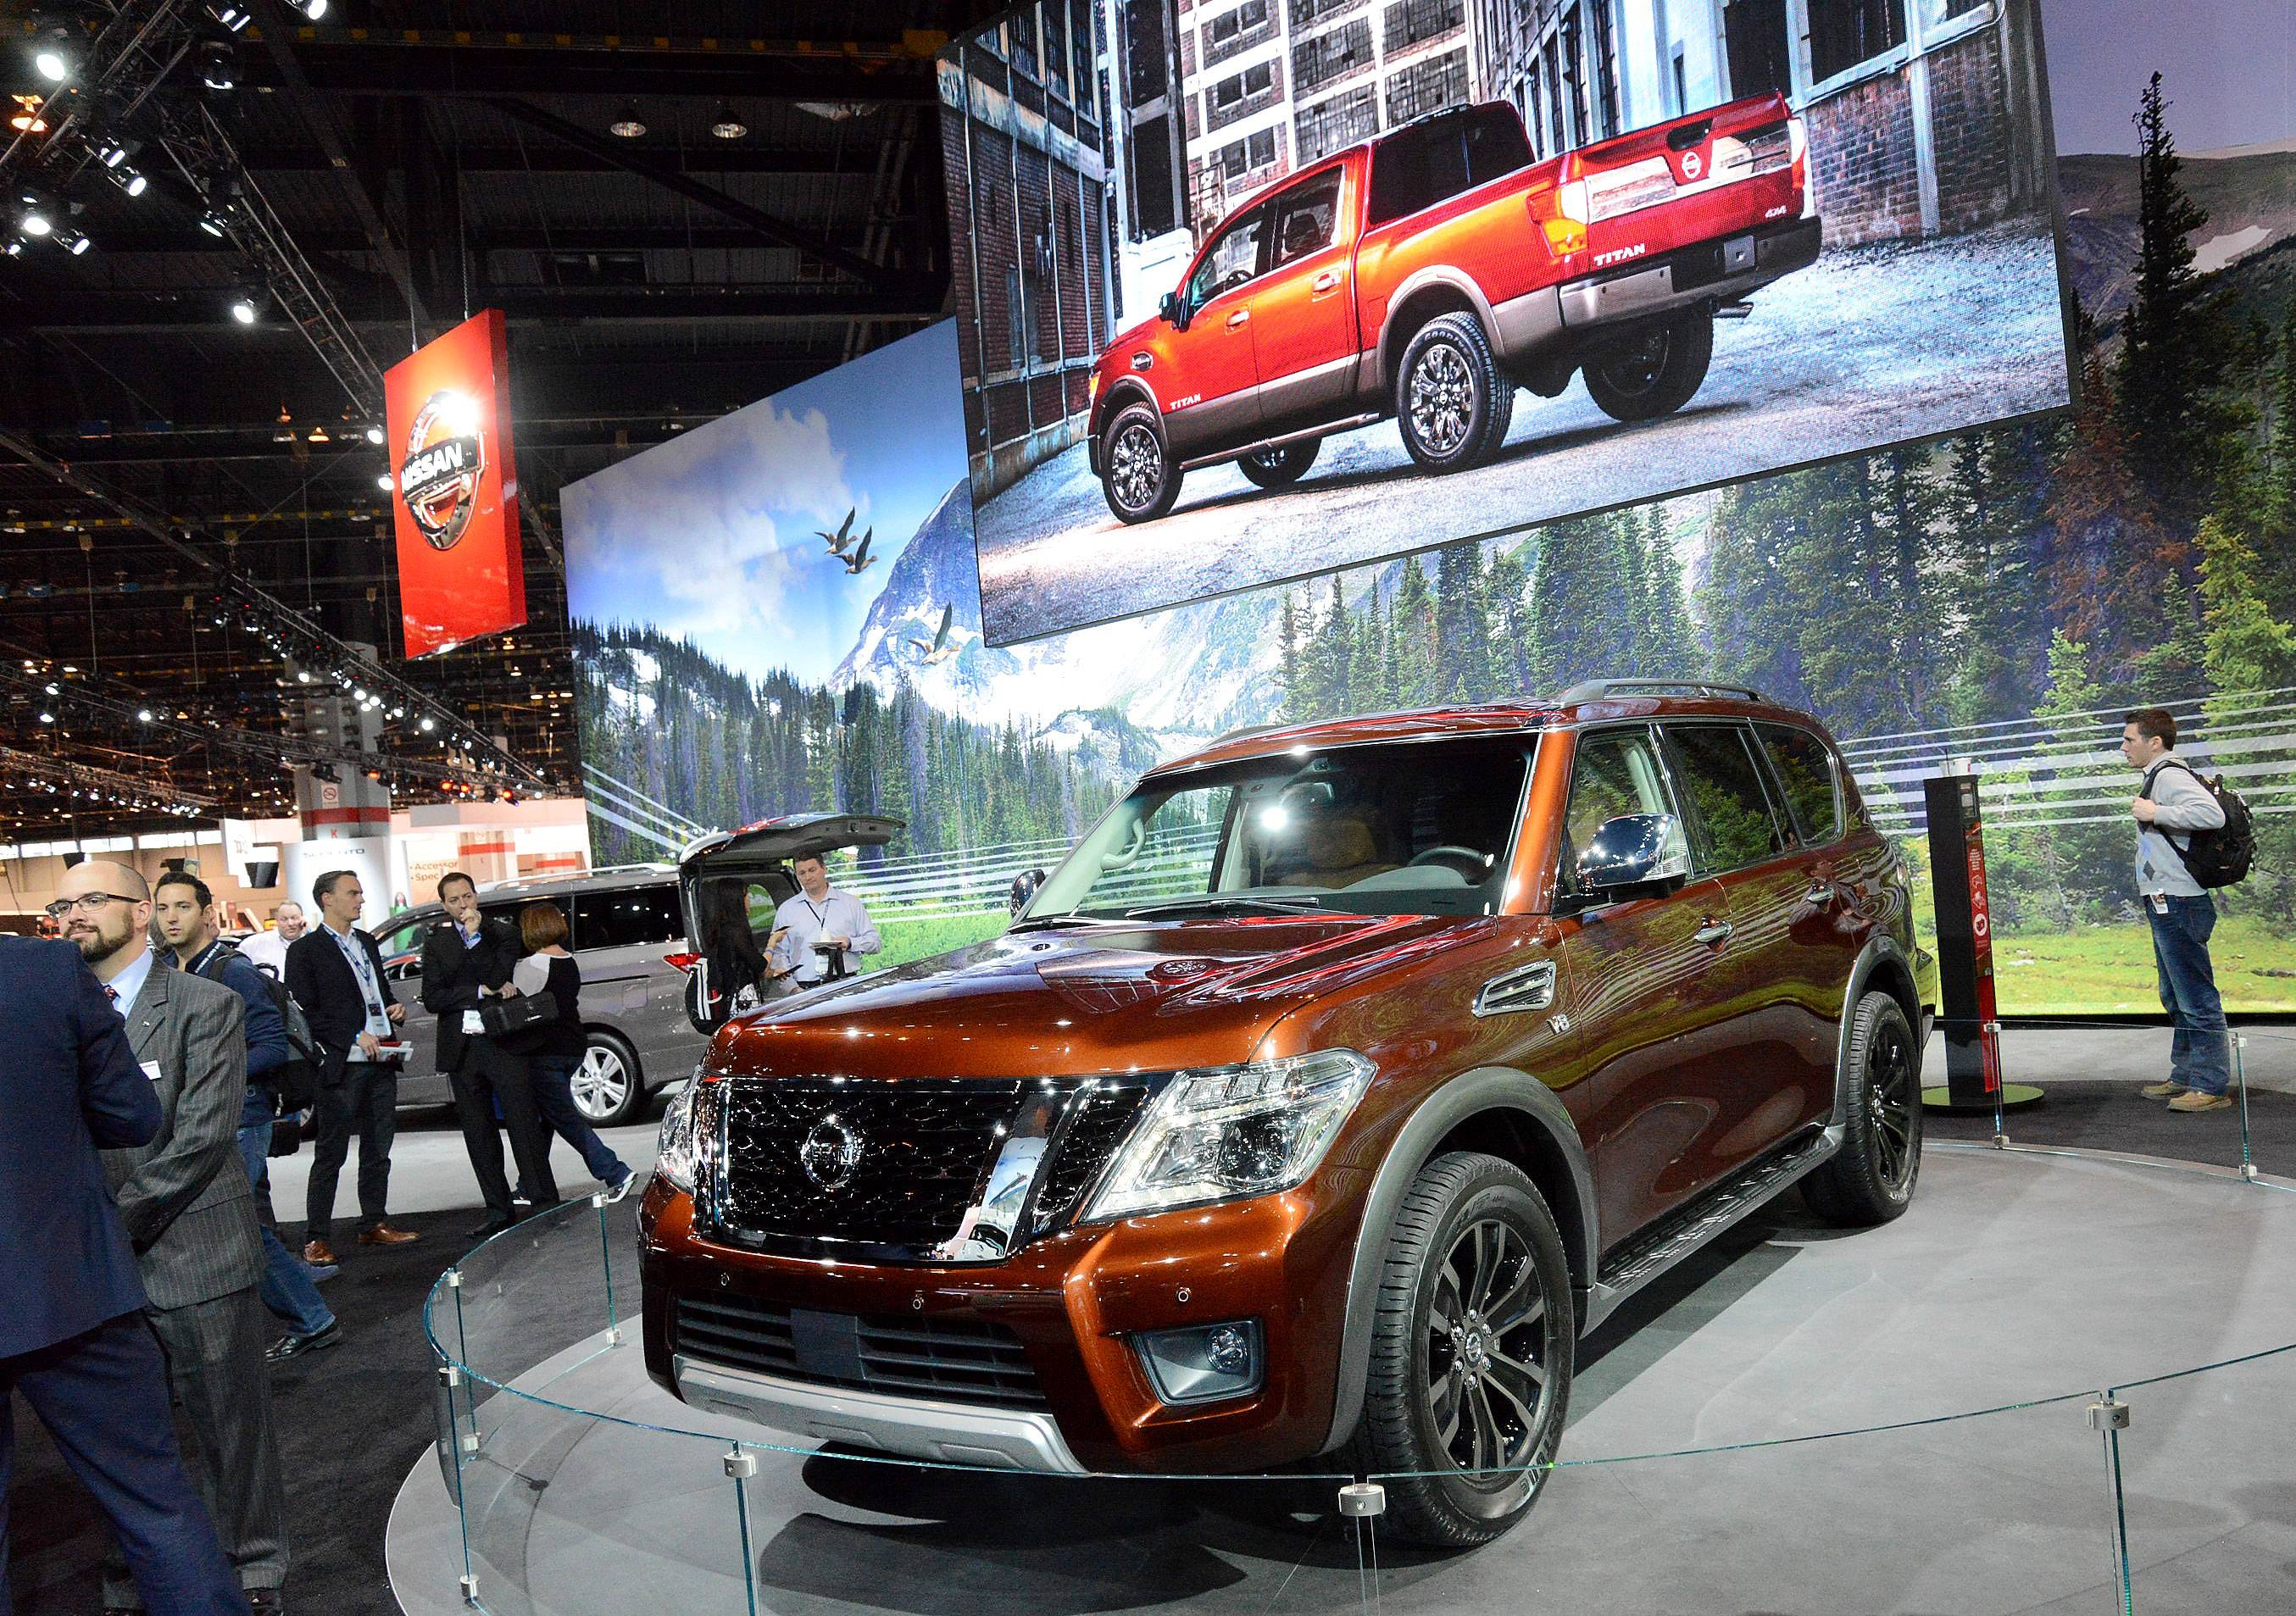 Suburban auto dealers 2016 Chicago Auto Show at McCormick Place in Chicago say they see a demand for SUVs in 2016 — just not big ones as fuel efficiency is still in consumers' minds. This is a 2017 Nissan Armada.